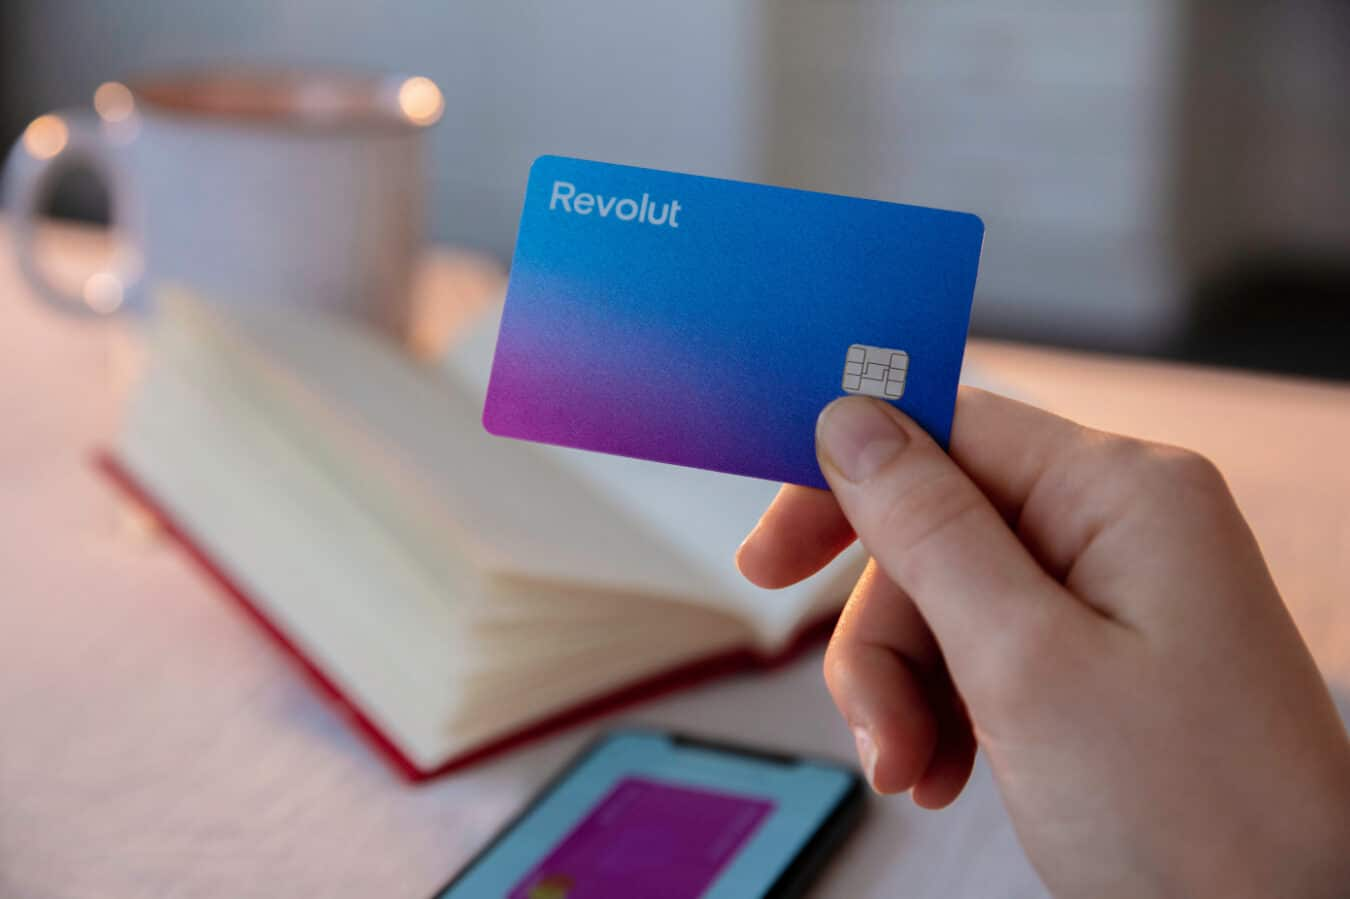 revolut card in a persons hand